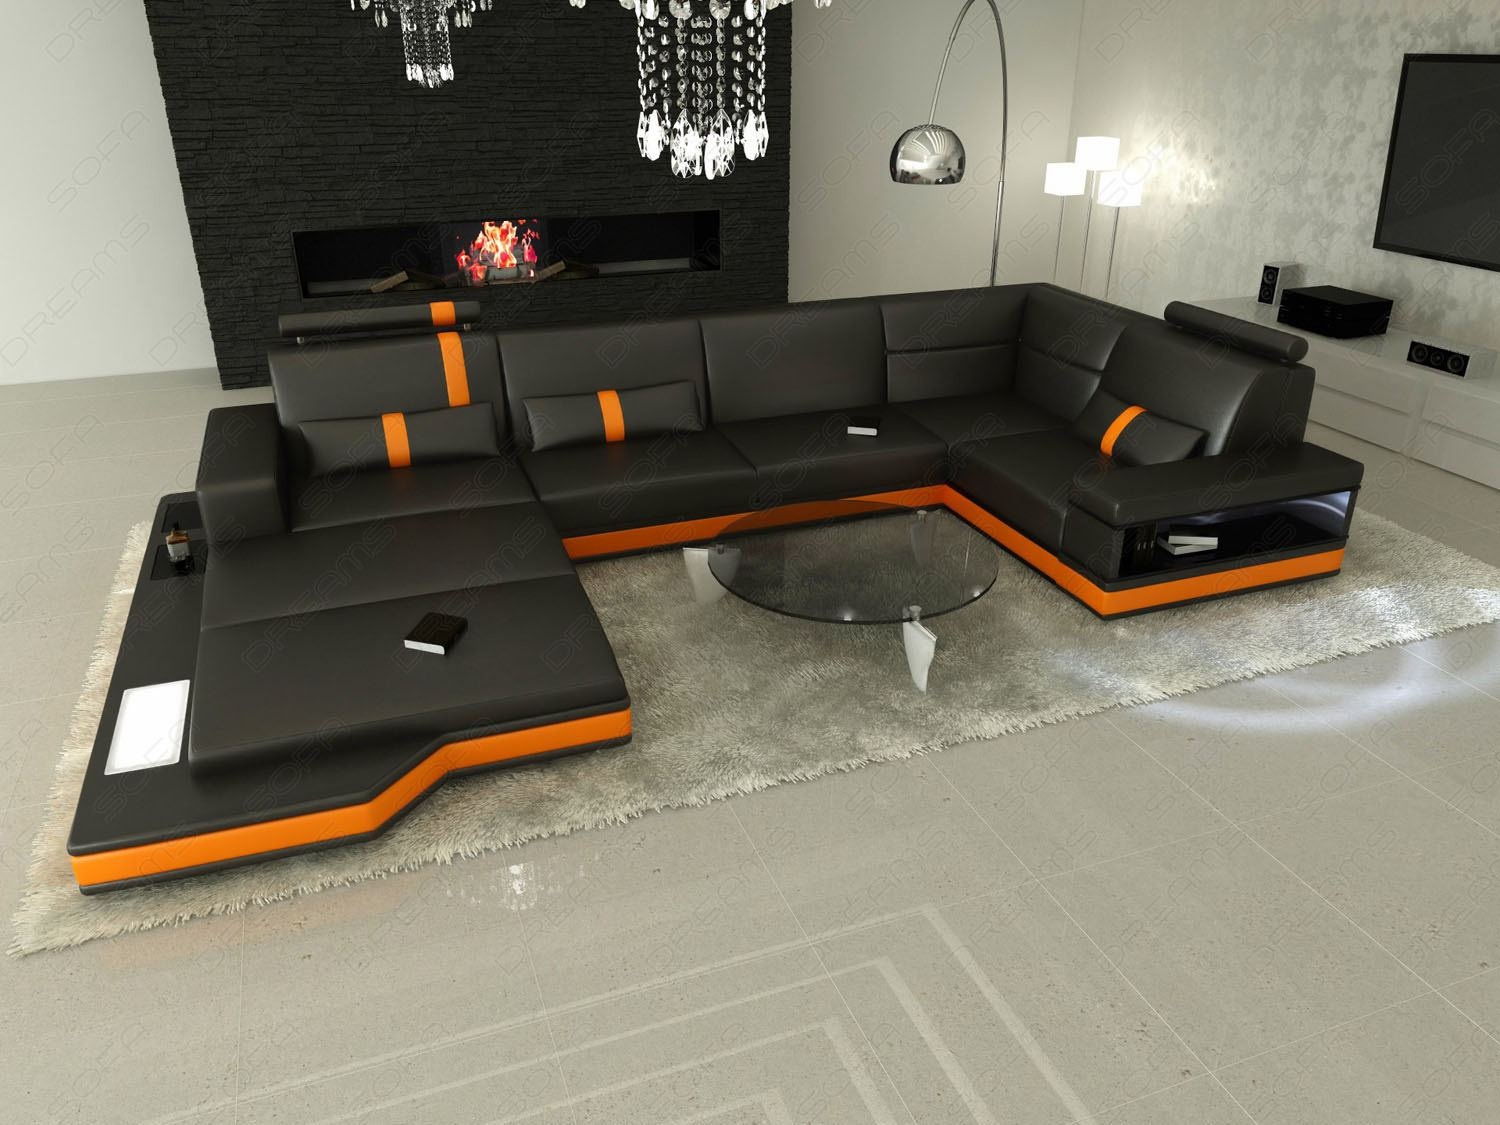 couchgarnitur wohnzimmer led messana design wohnlandschaft sofa ecksofa luxus ebay. Black Bedroom Furniture Sets. Home Design Ideas